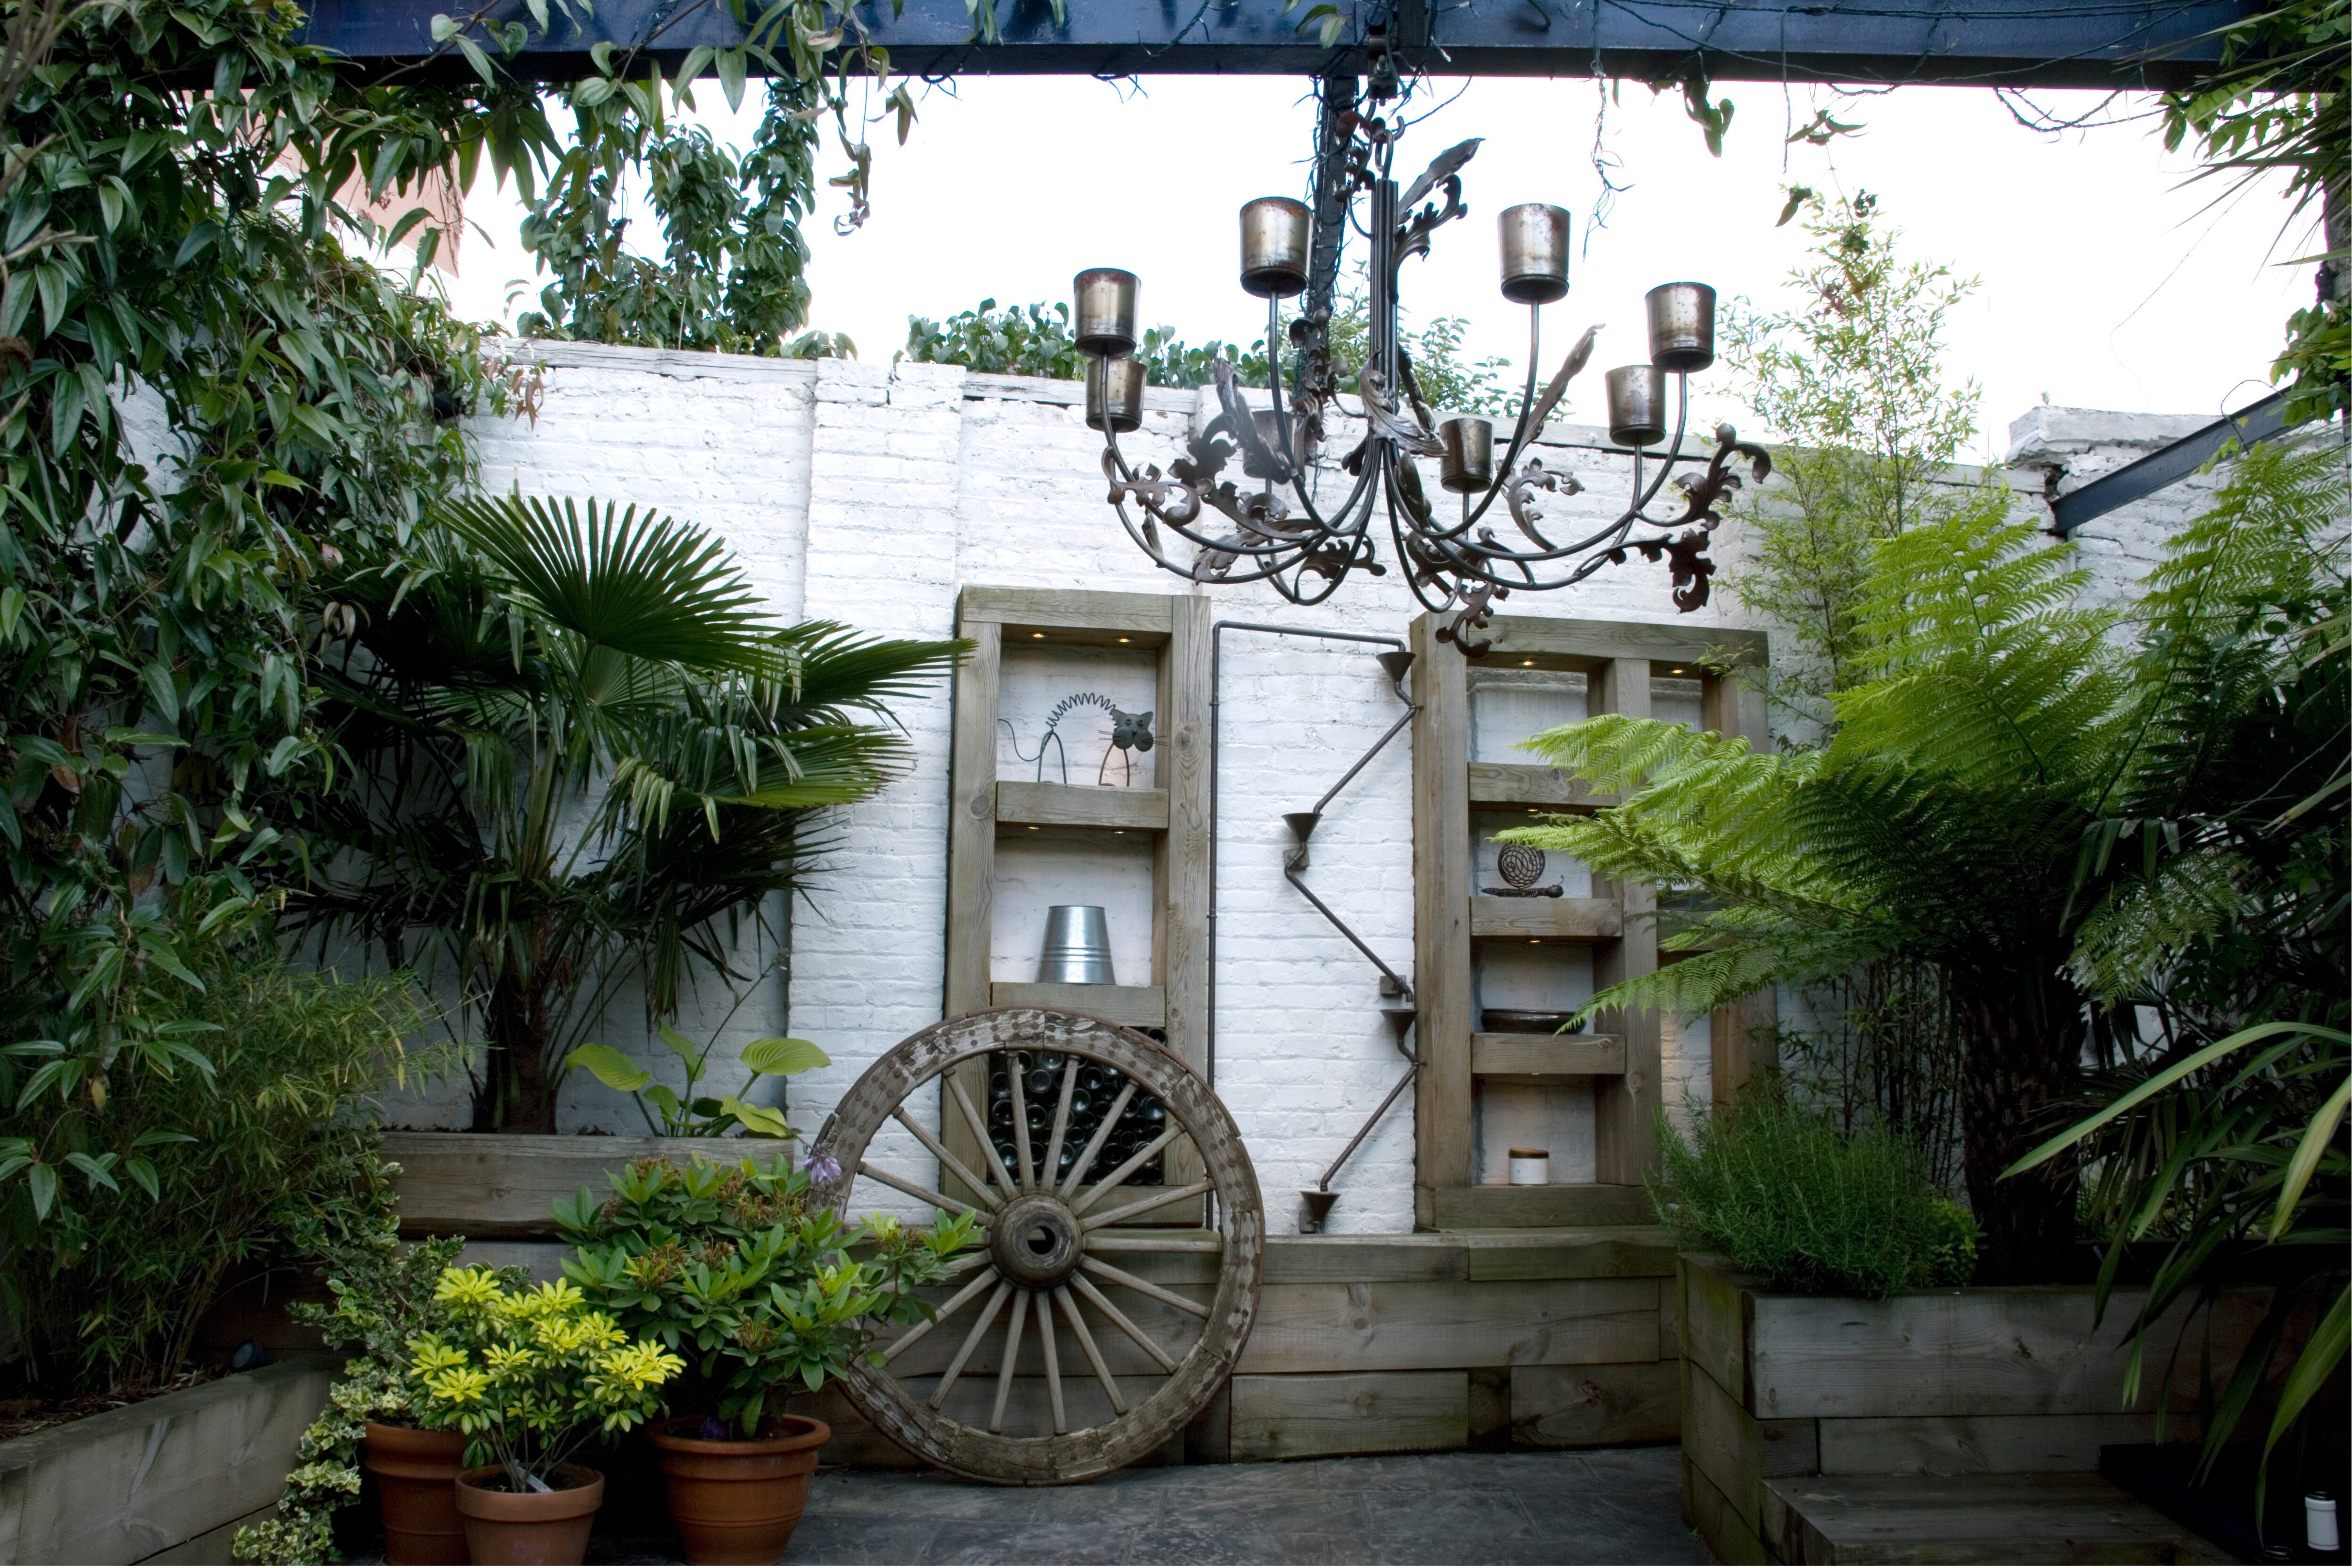 Garden Design Tips Railway Sleepers - can be used for shelving